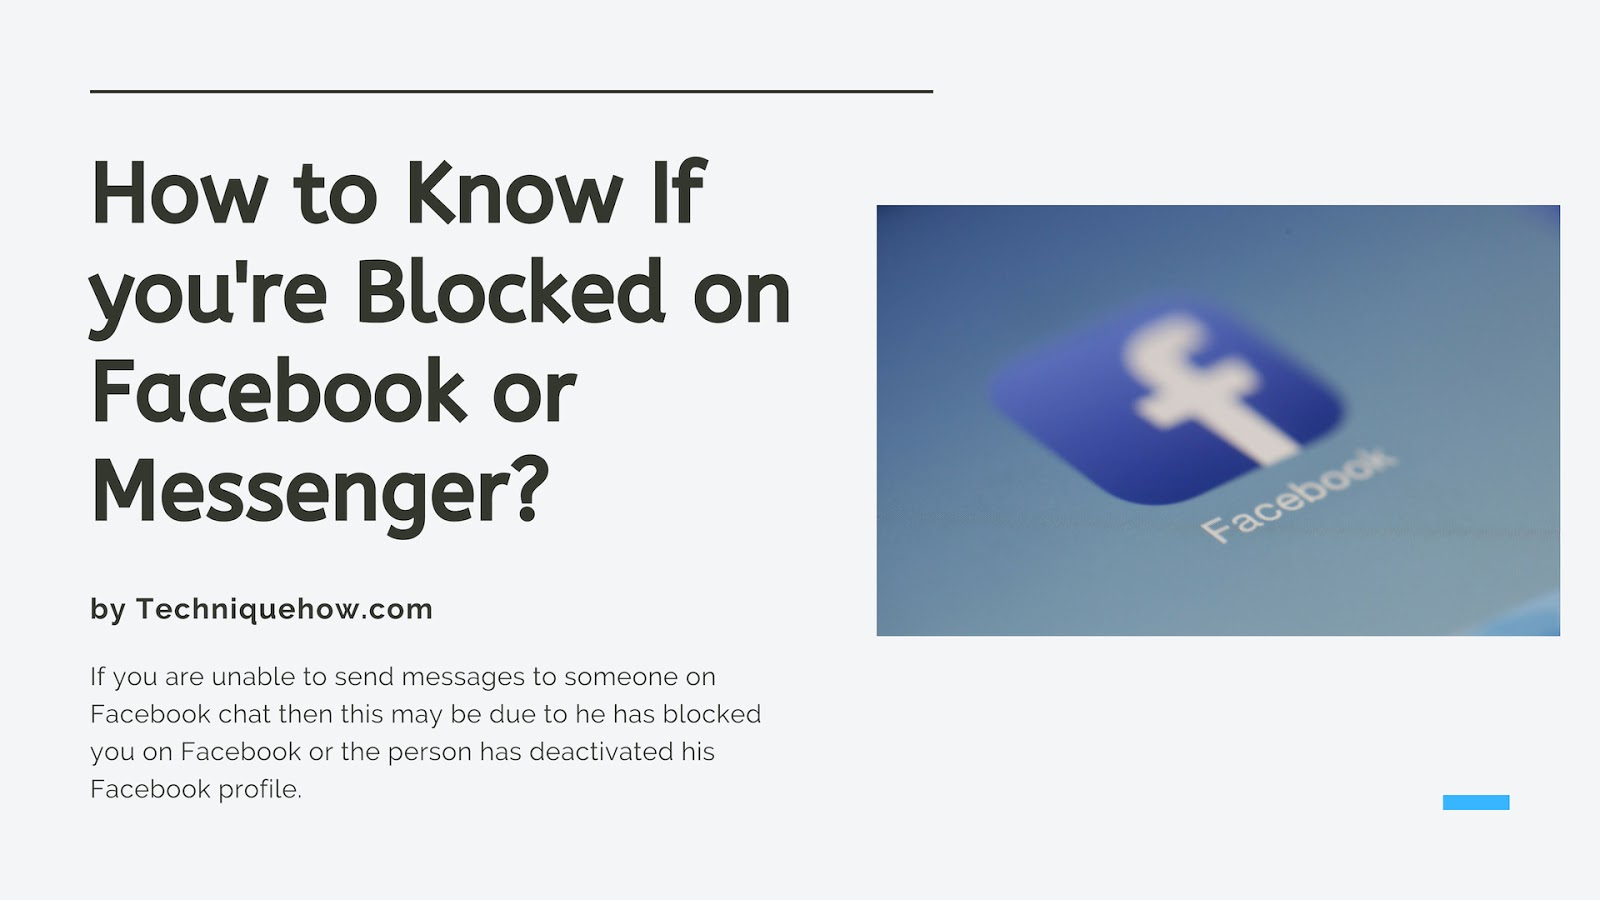 Tell if You are blocked on Facebook